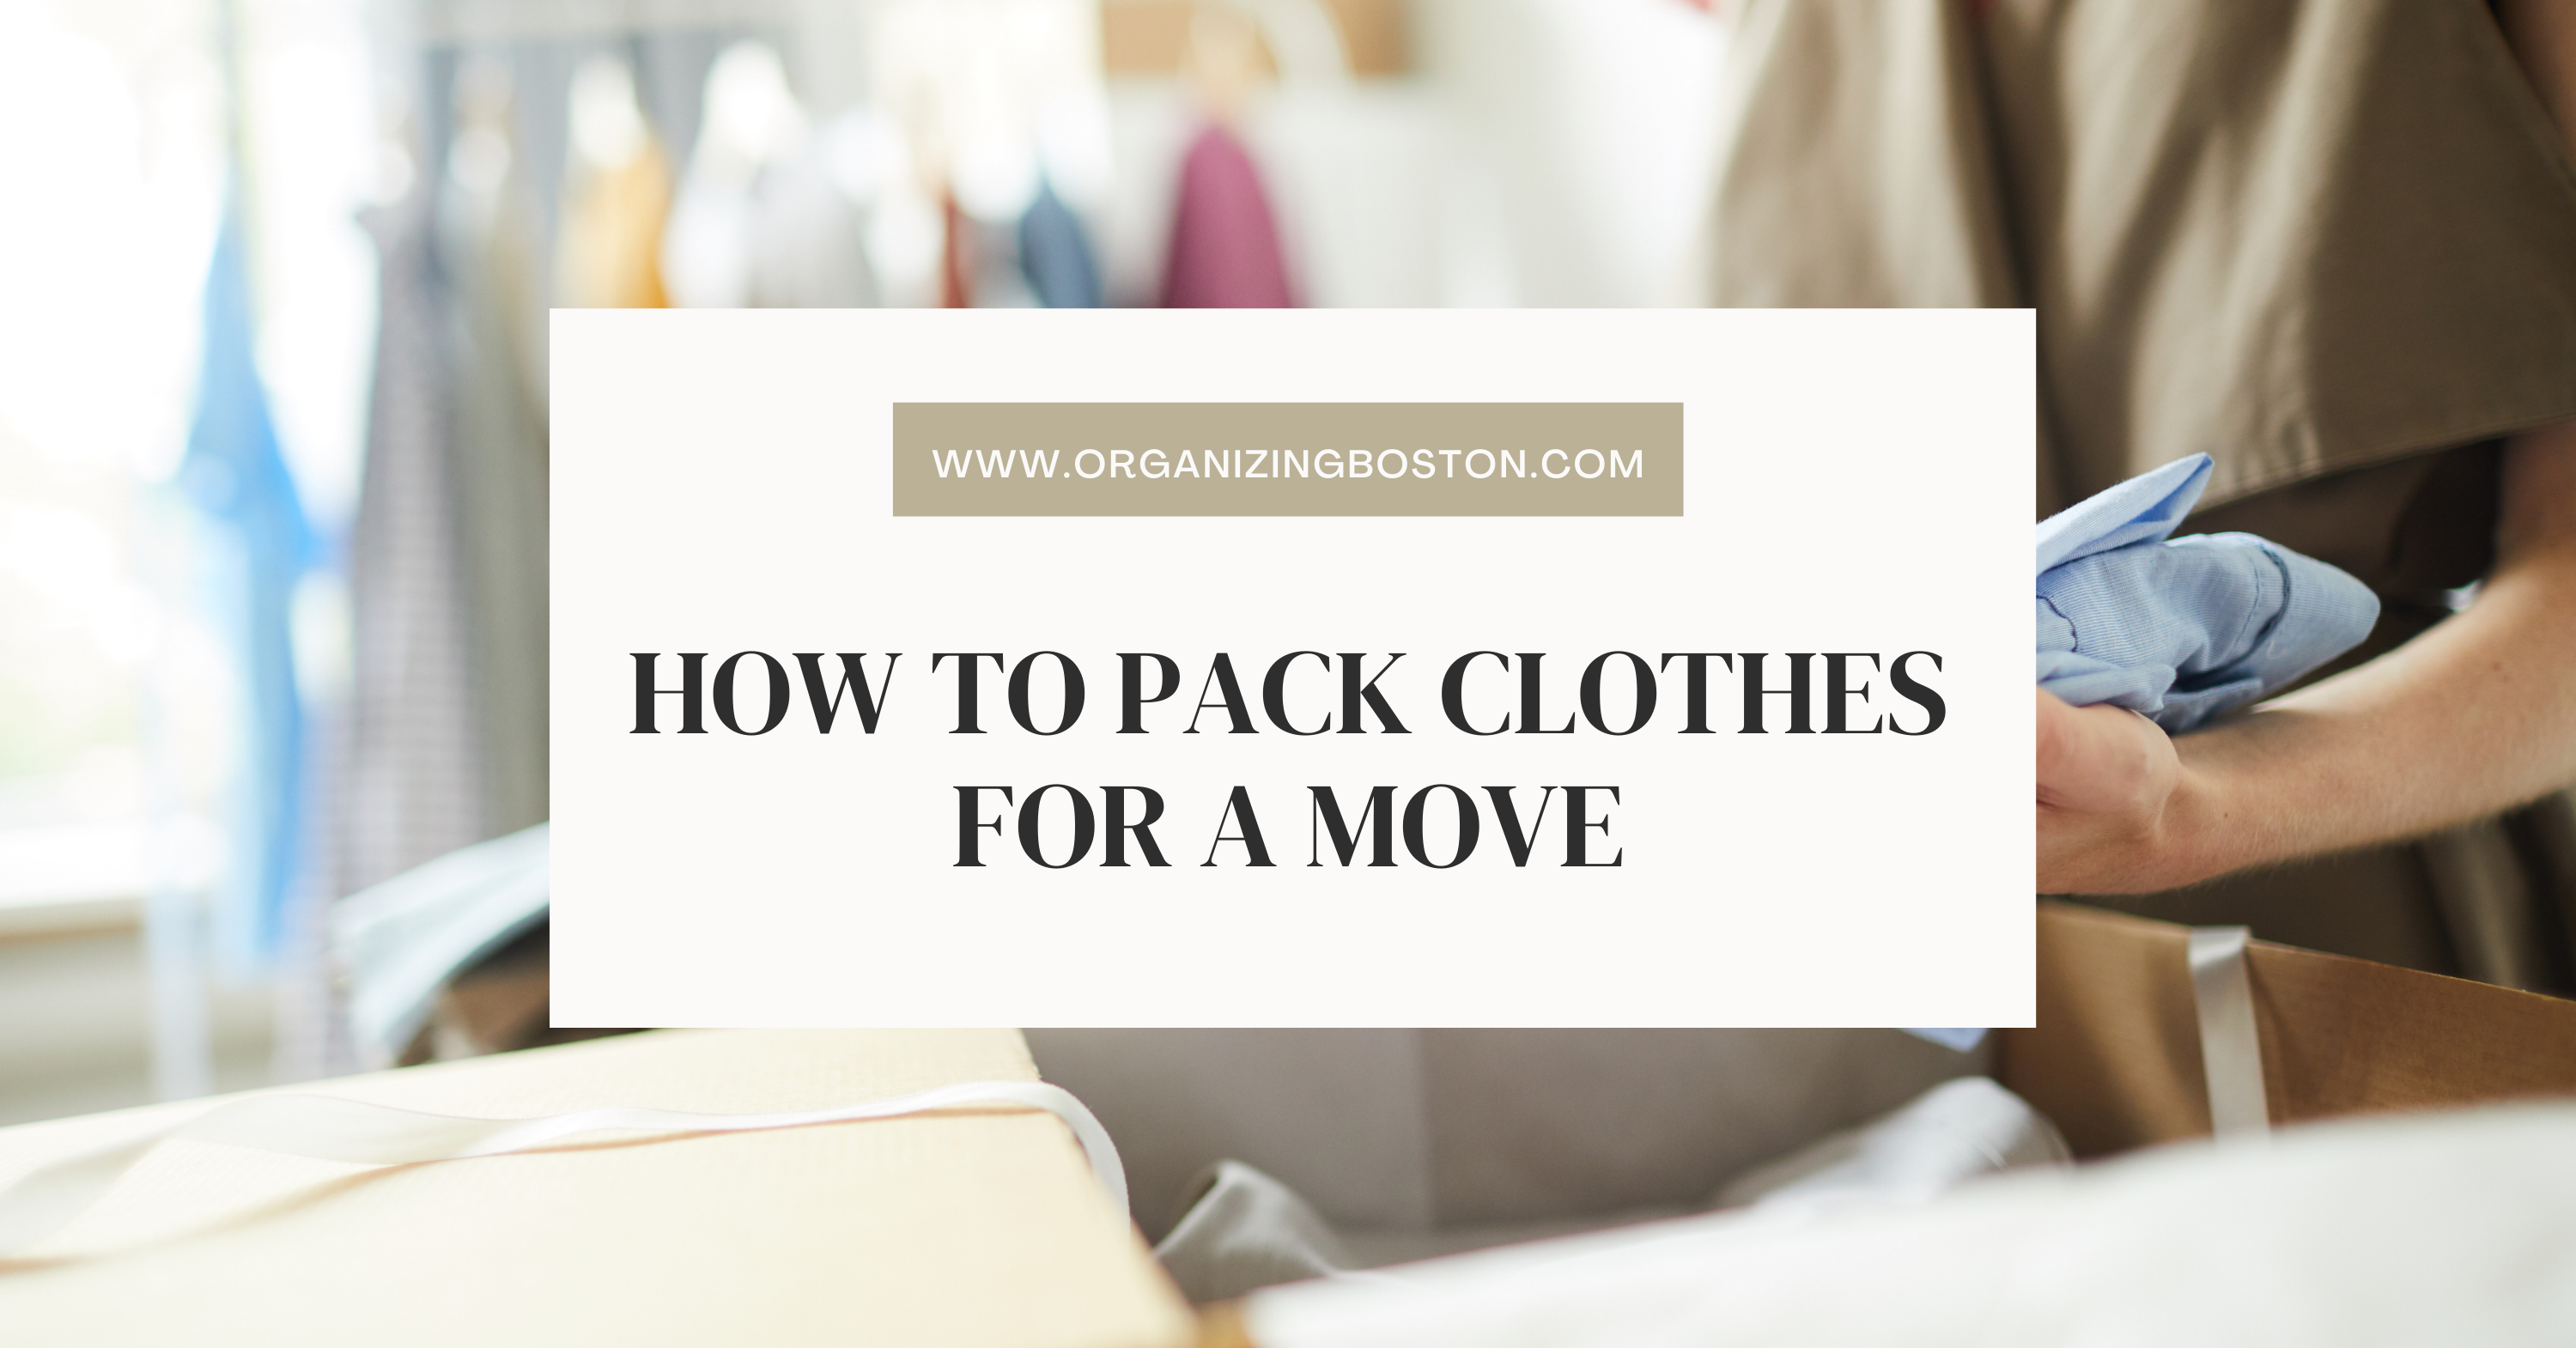 How to Pack Clothes for a Move